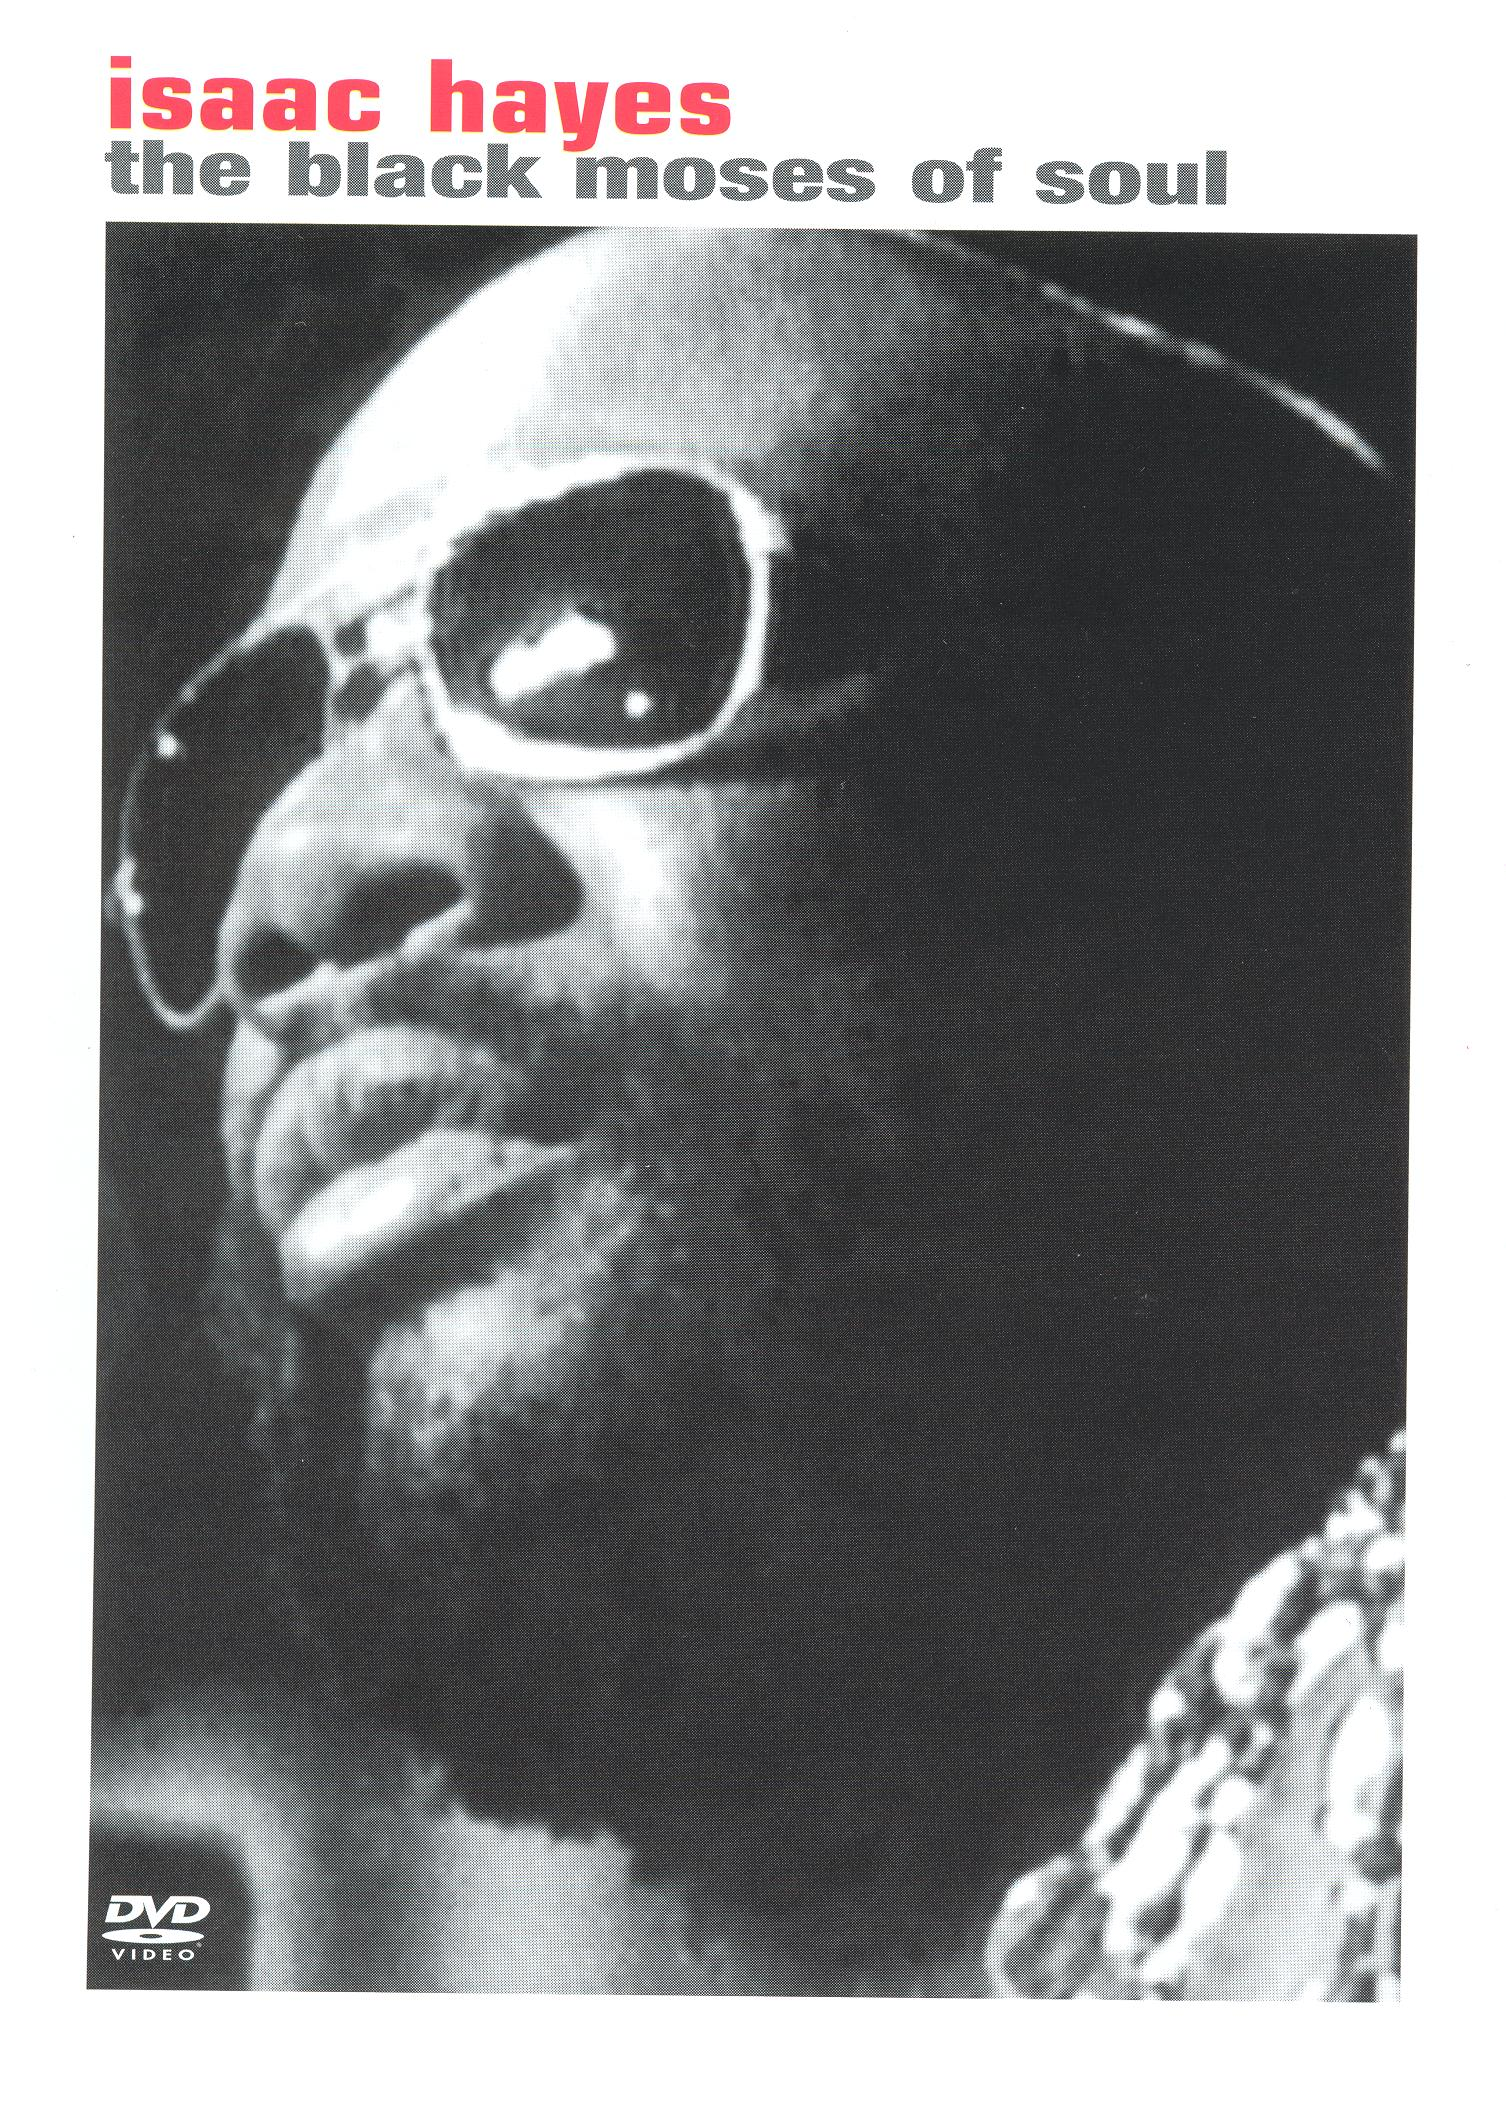 Isaac Hayes: The Black Moses of Soul